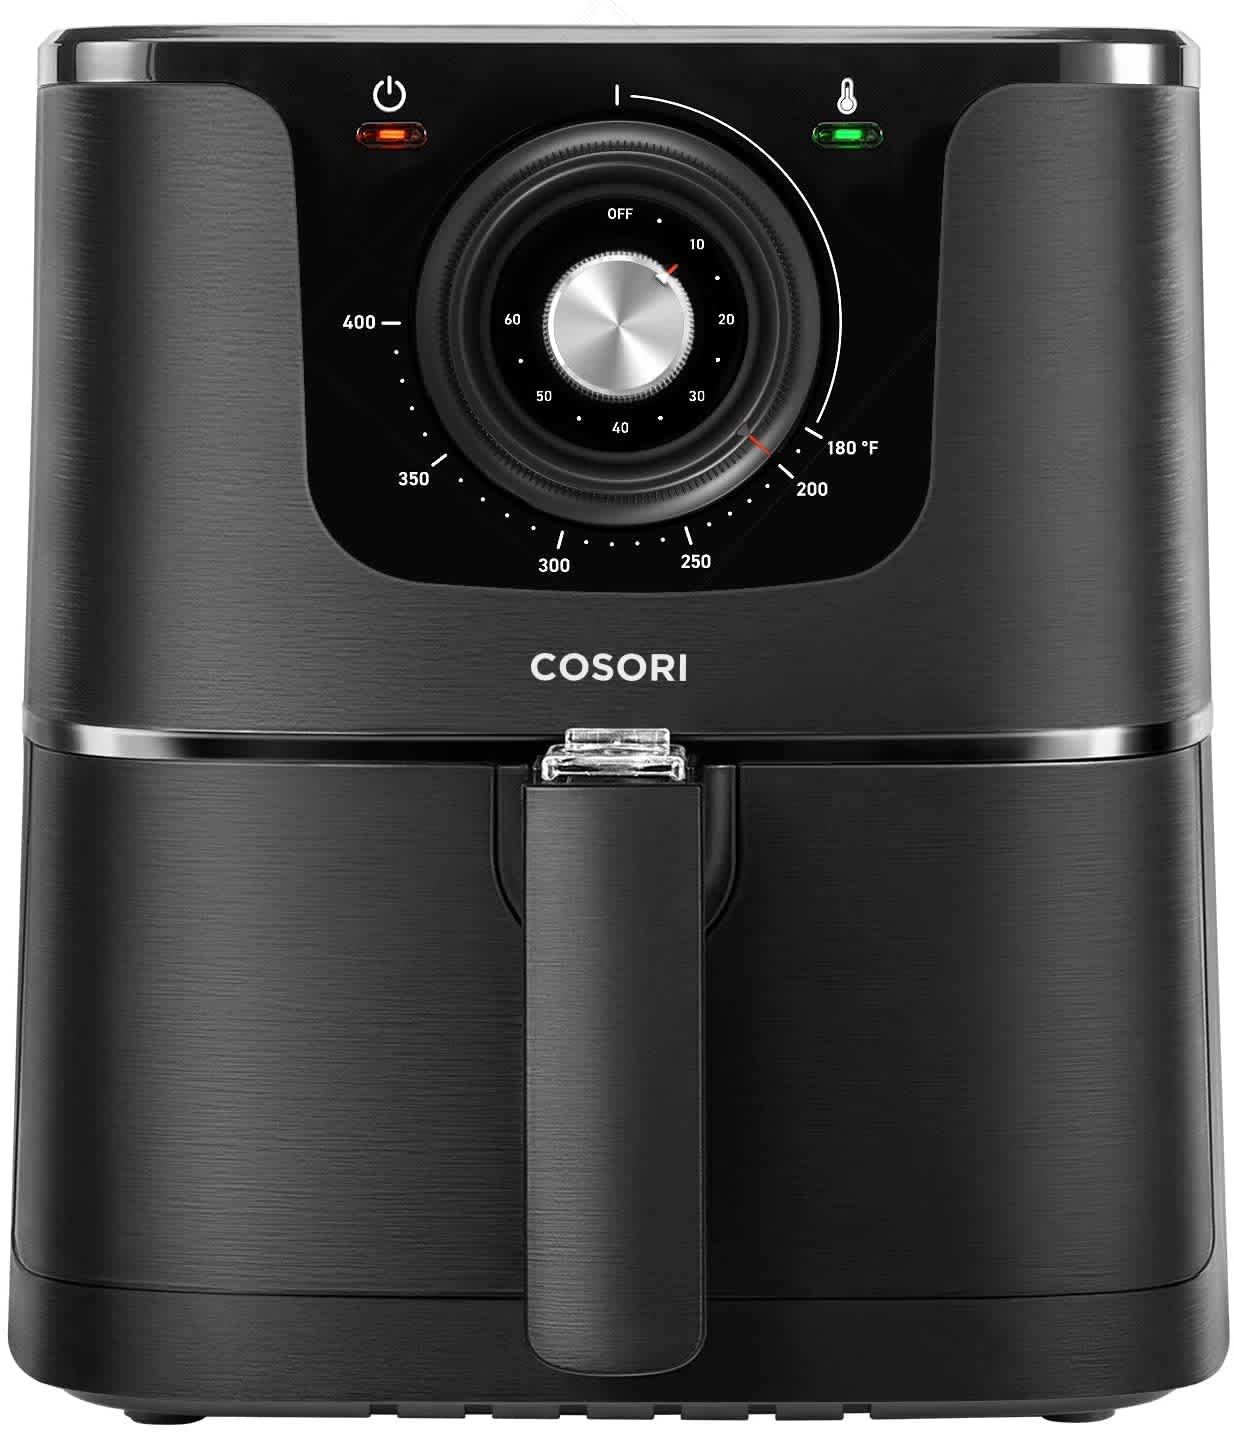 Cosori Max XL 5.8-Quart 1700W Air Fryer